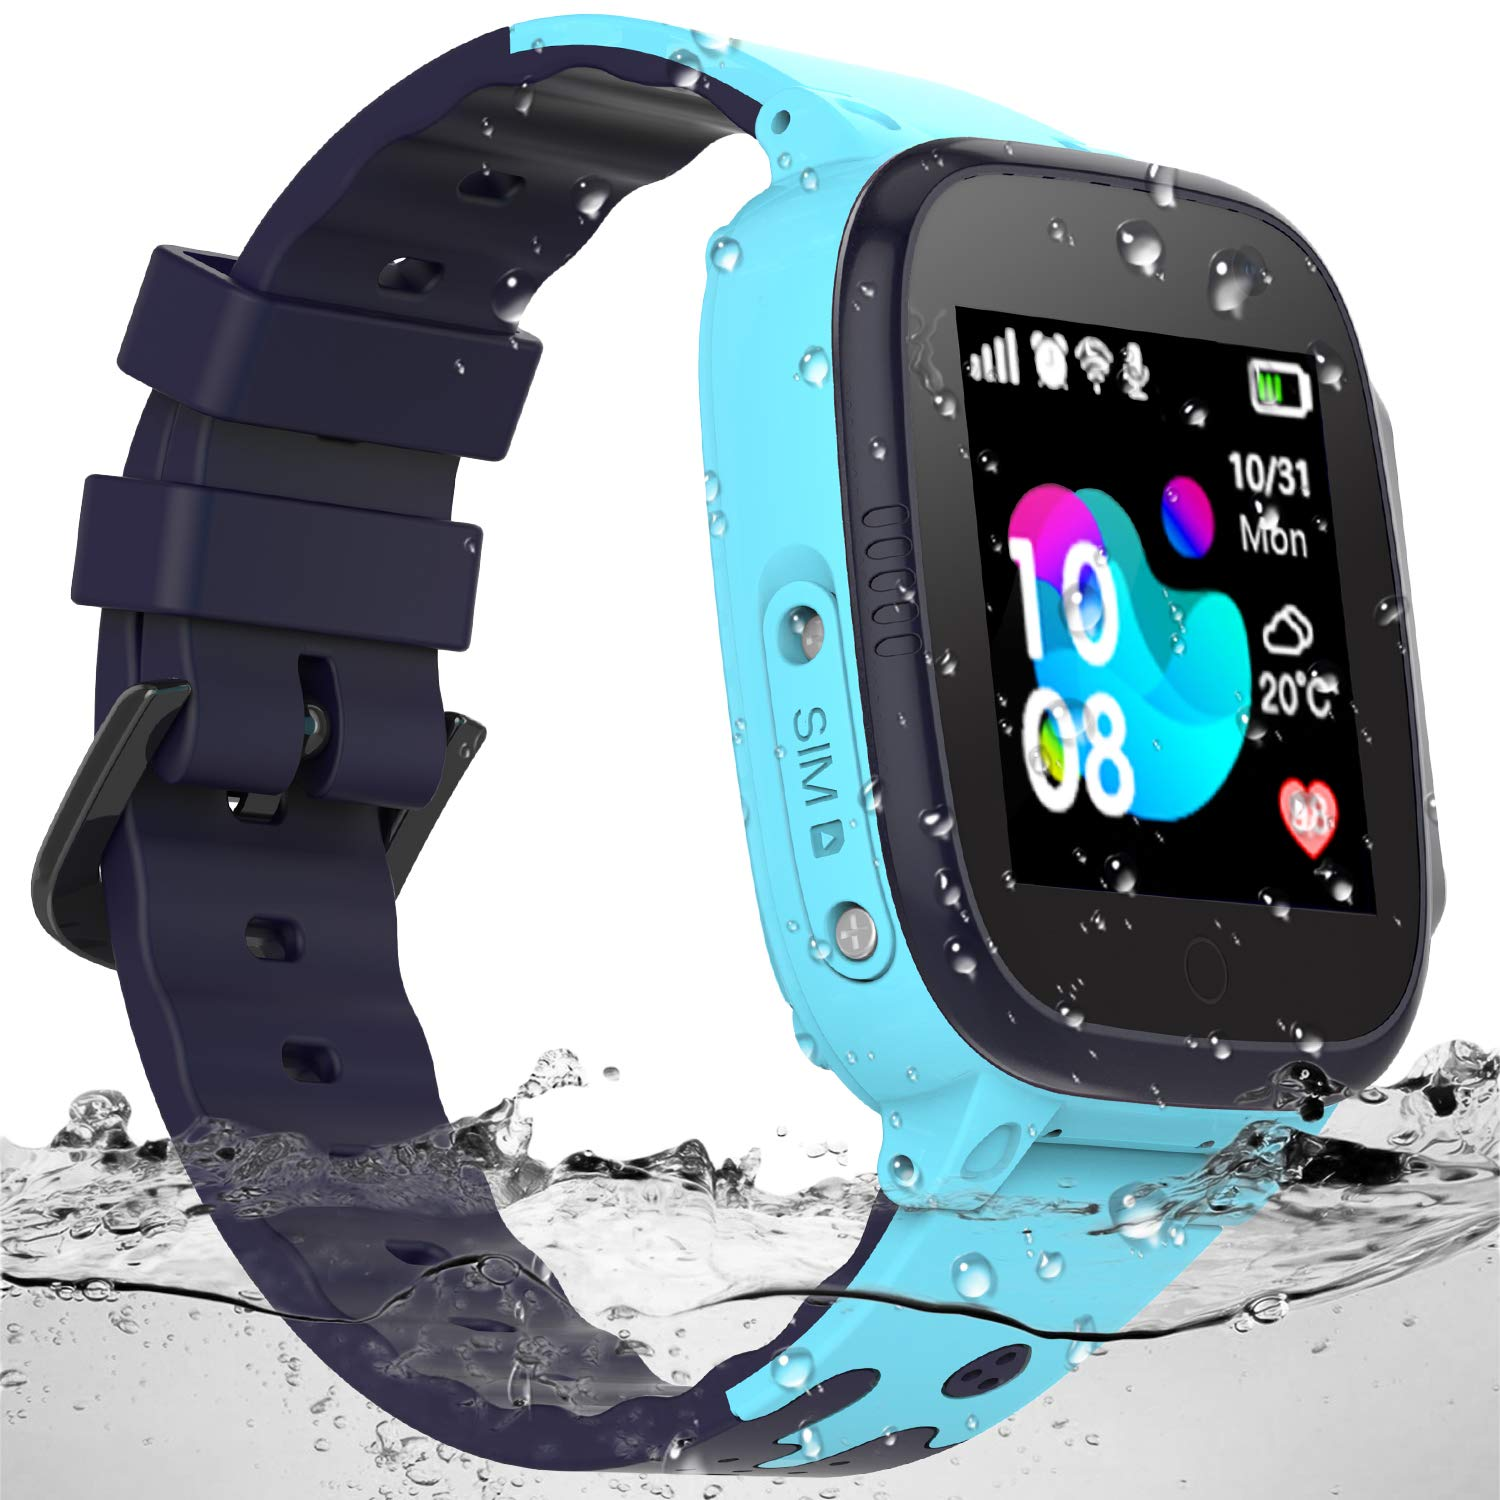 SZBXD Kids Waterproof Smart Watch - Boys & Girls Smartwatch Phone with Camera Games Touch Screen SOS Call Voice Chatting Christmas Birthday Gift (Blue) by SZBXD